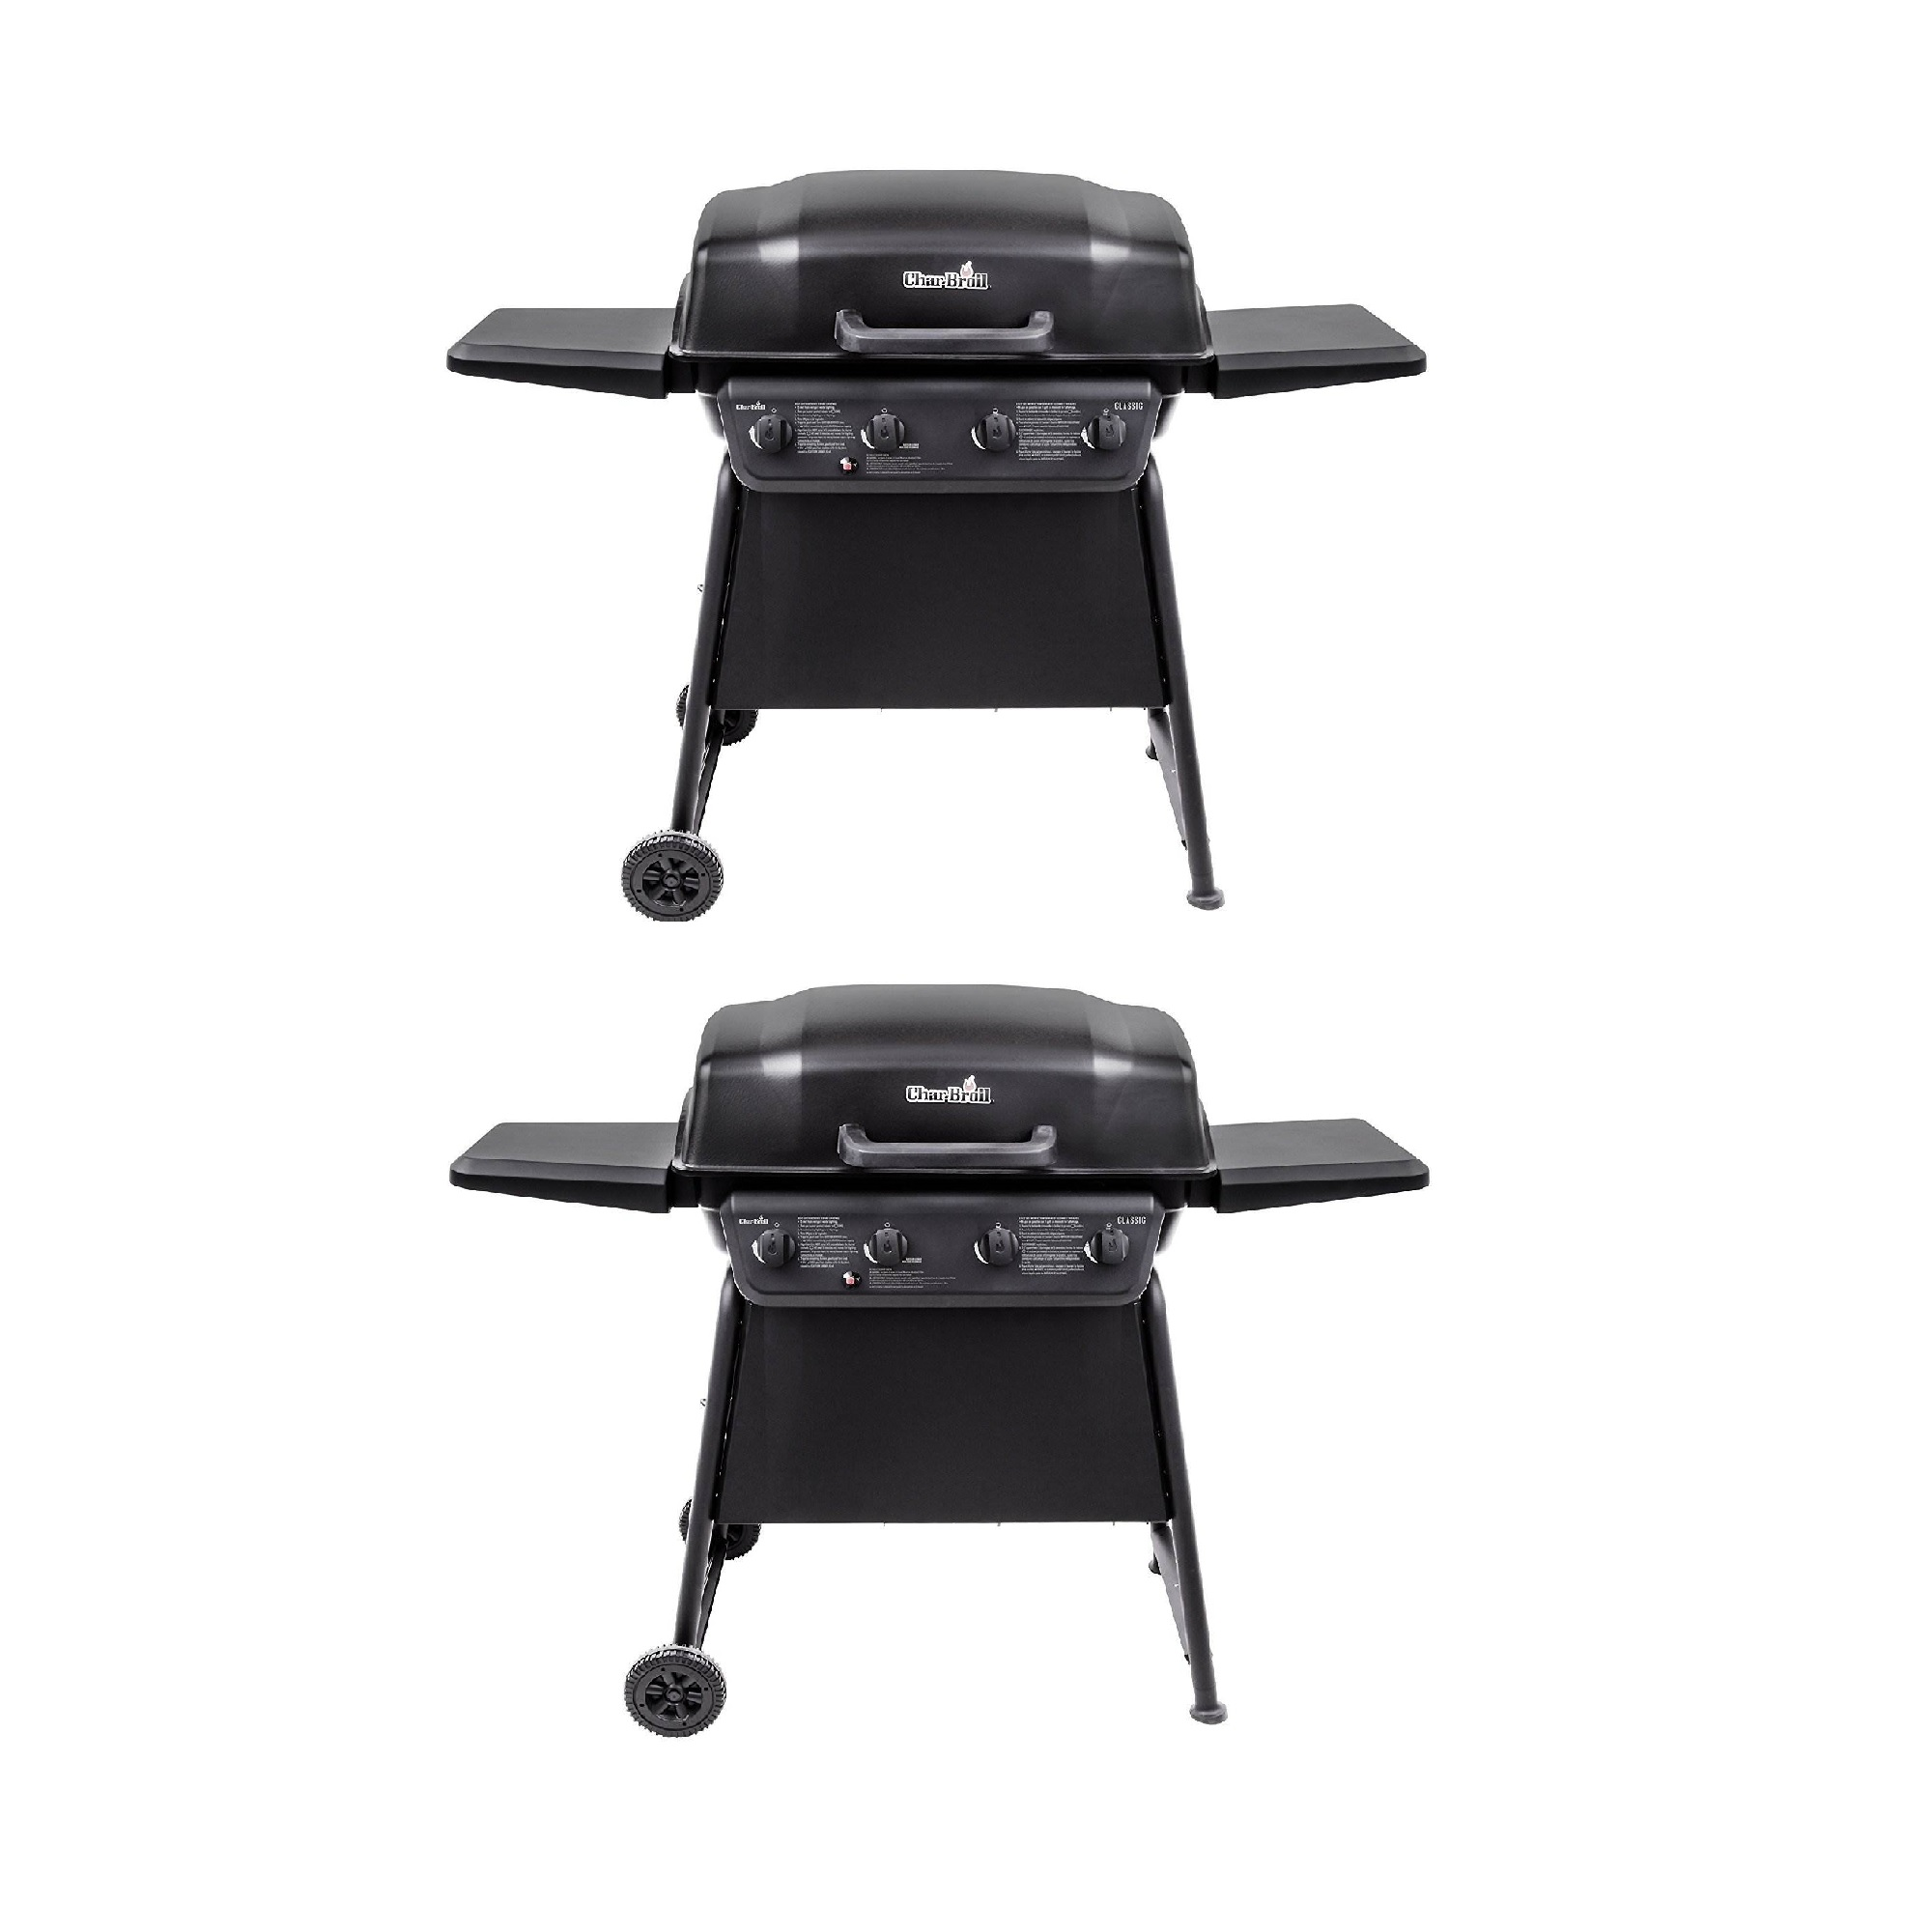 Char-Broil Classic 4 Burner Outdoor Backyard Barbecue ...